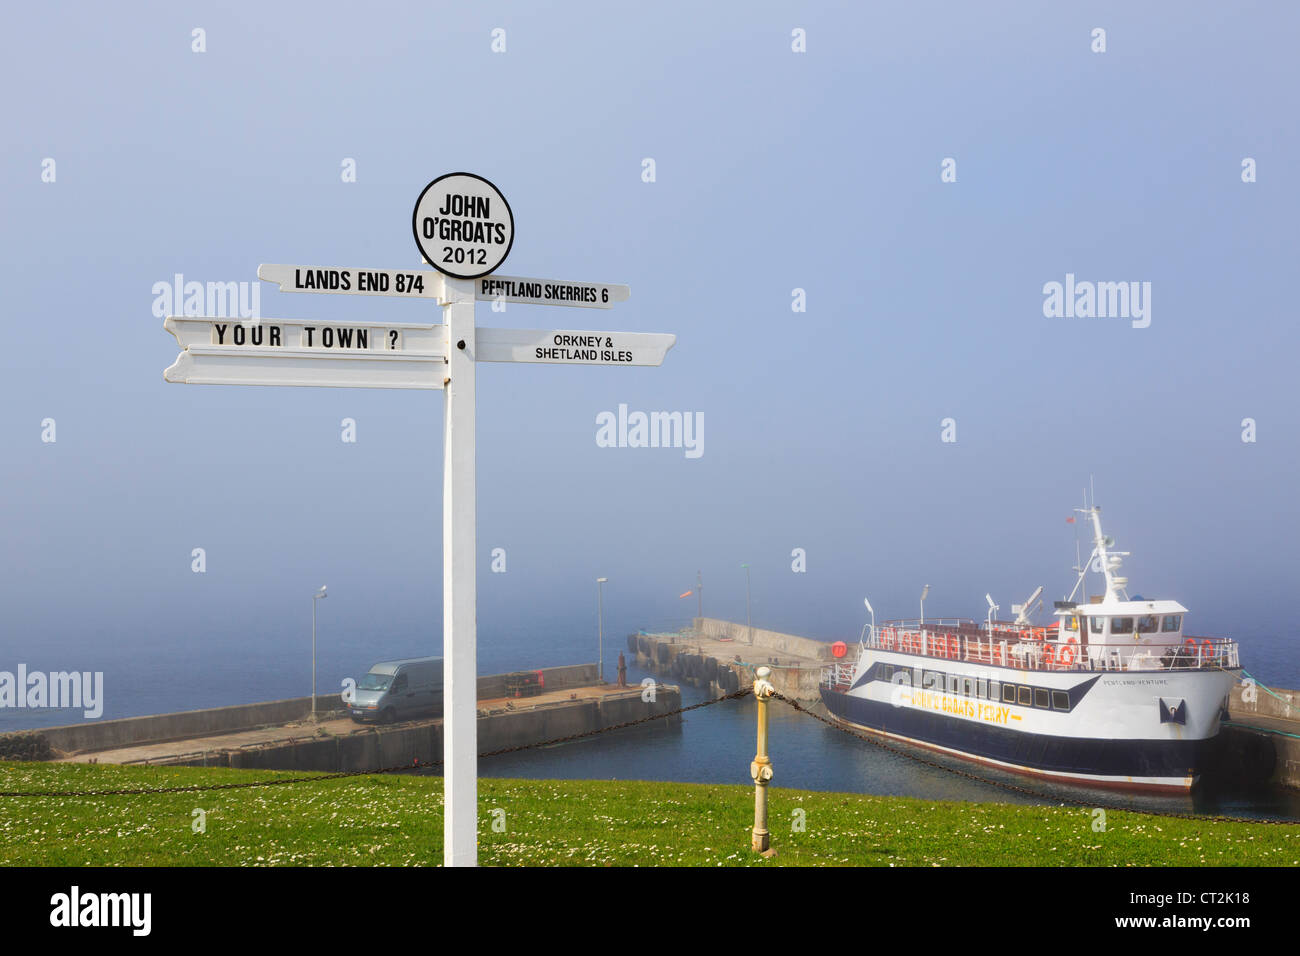 Scene with signpost and ferry boat with sea mist on the north eastern coast at John o' Groats Caithness Scotland - Stock Image